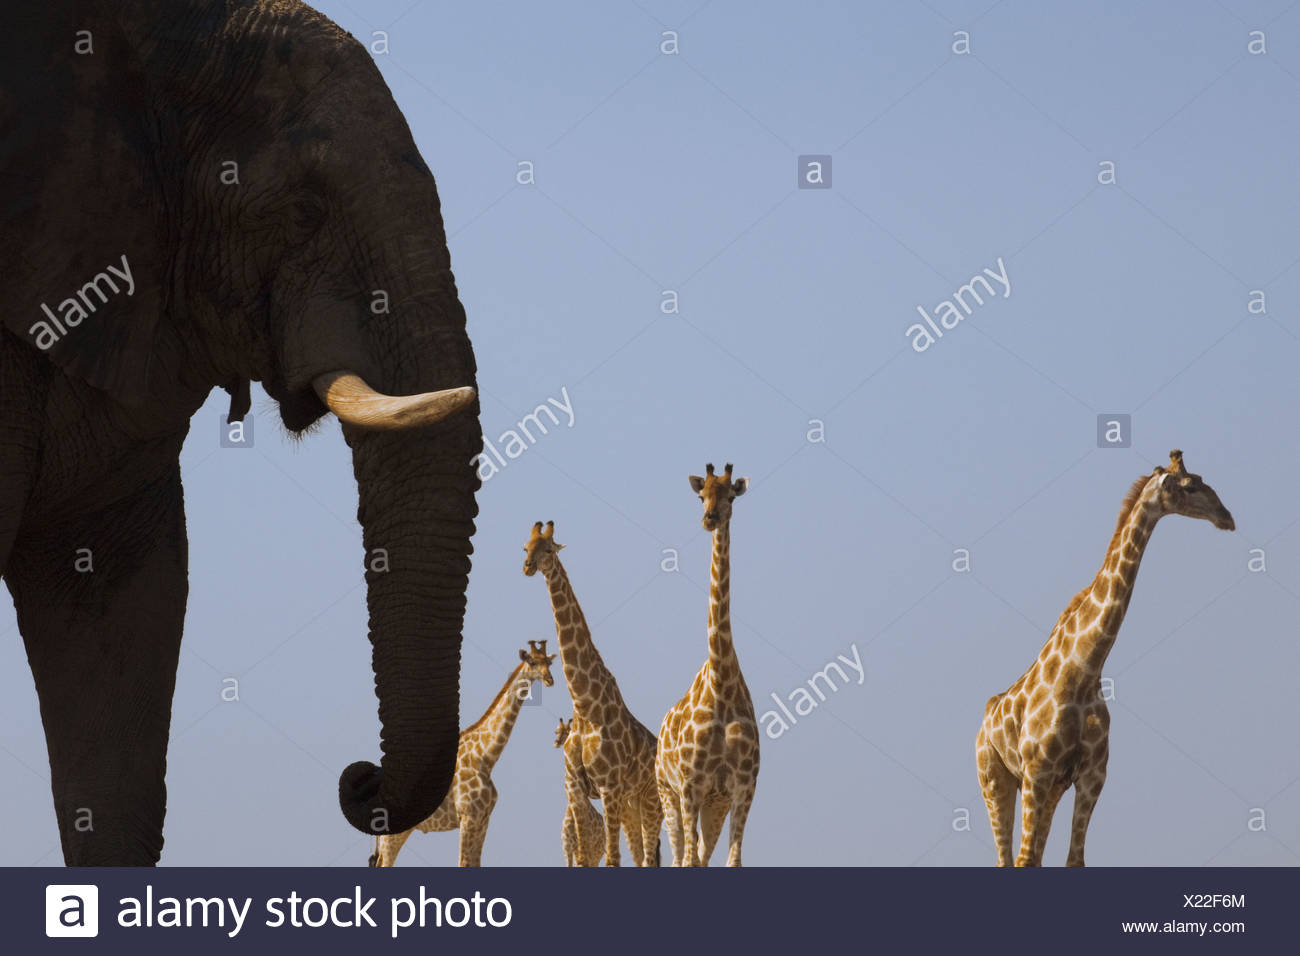 An elephant Loxodonta africana and four giraffes Giraffa camelopardalis in Etosha National Park Namibia - Stock Image